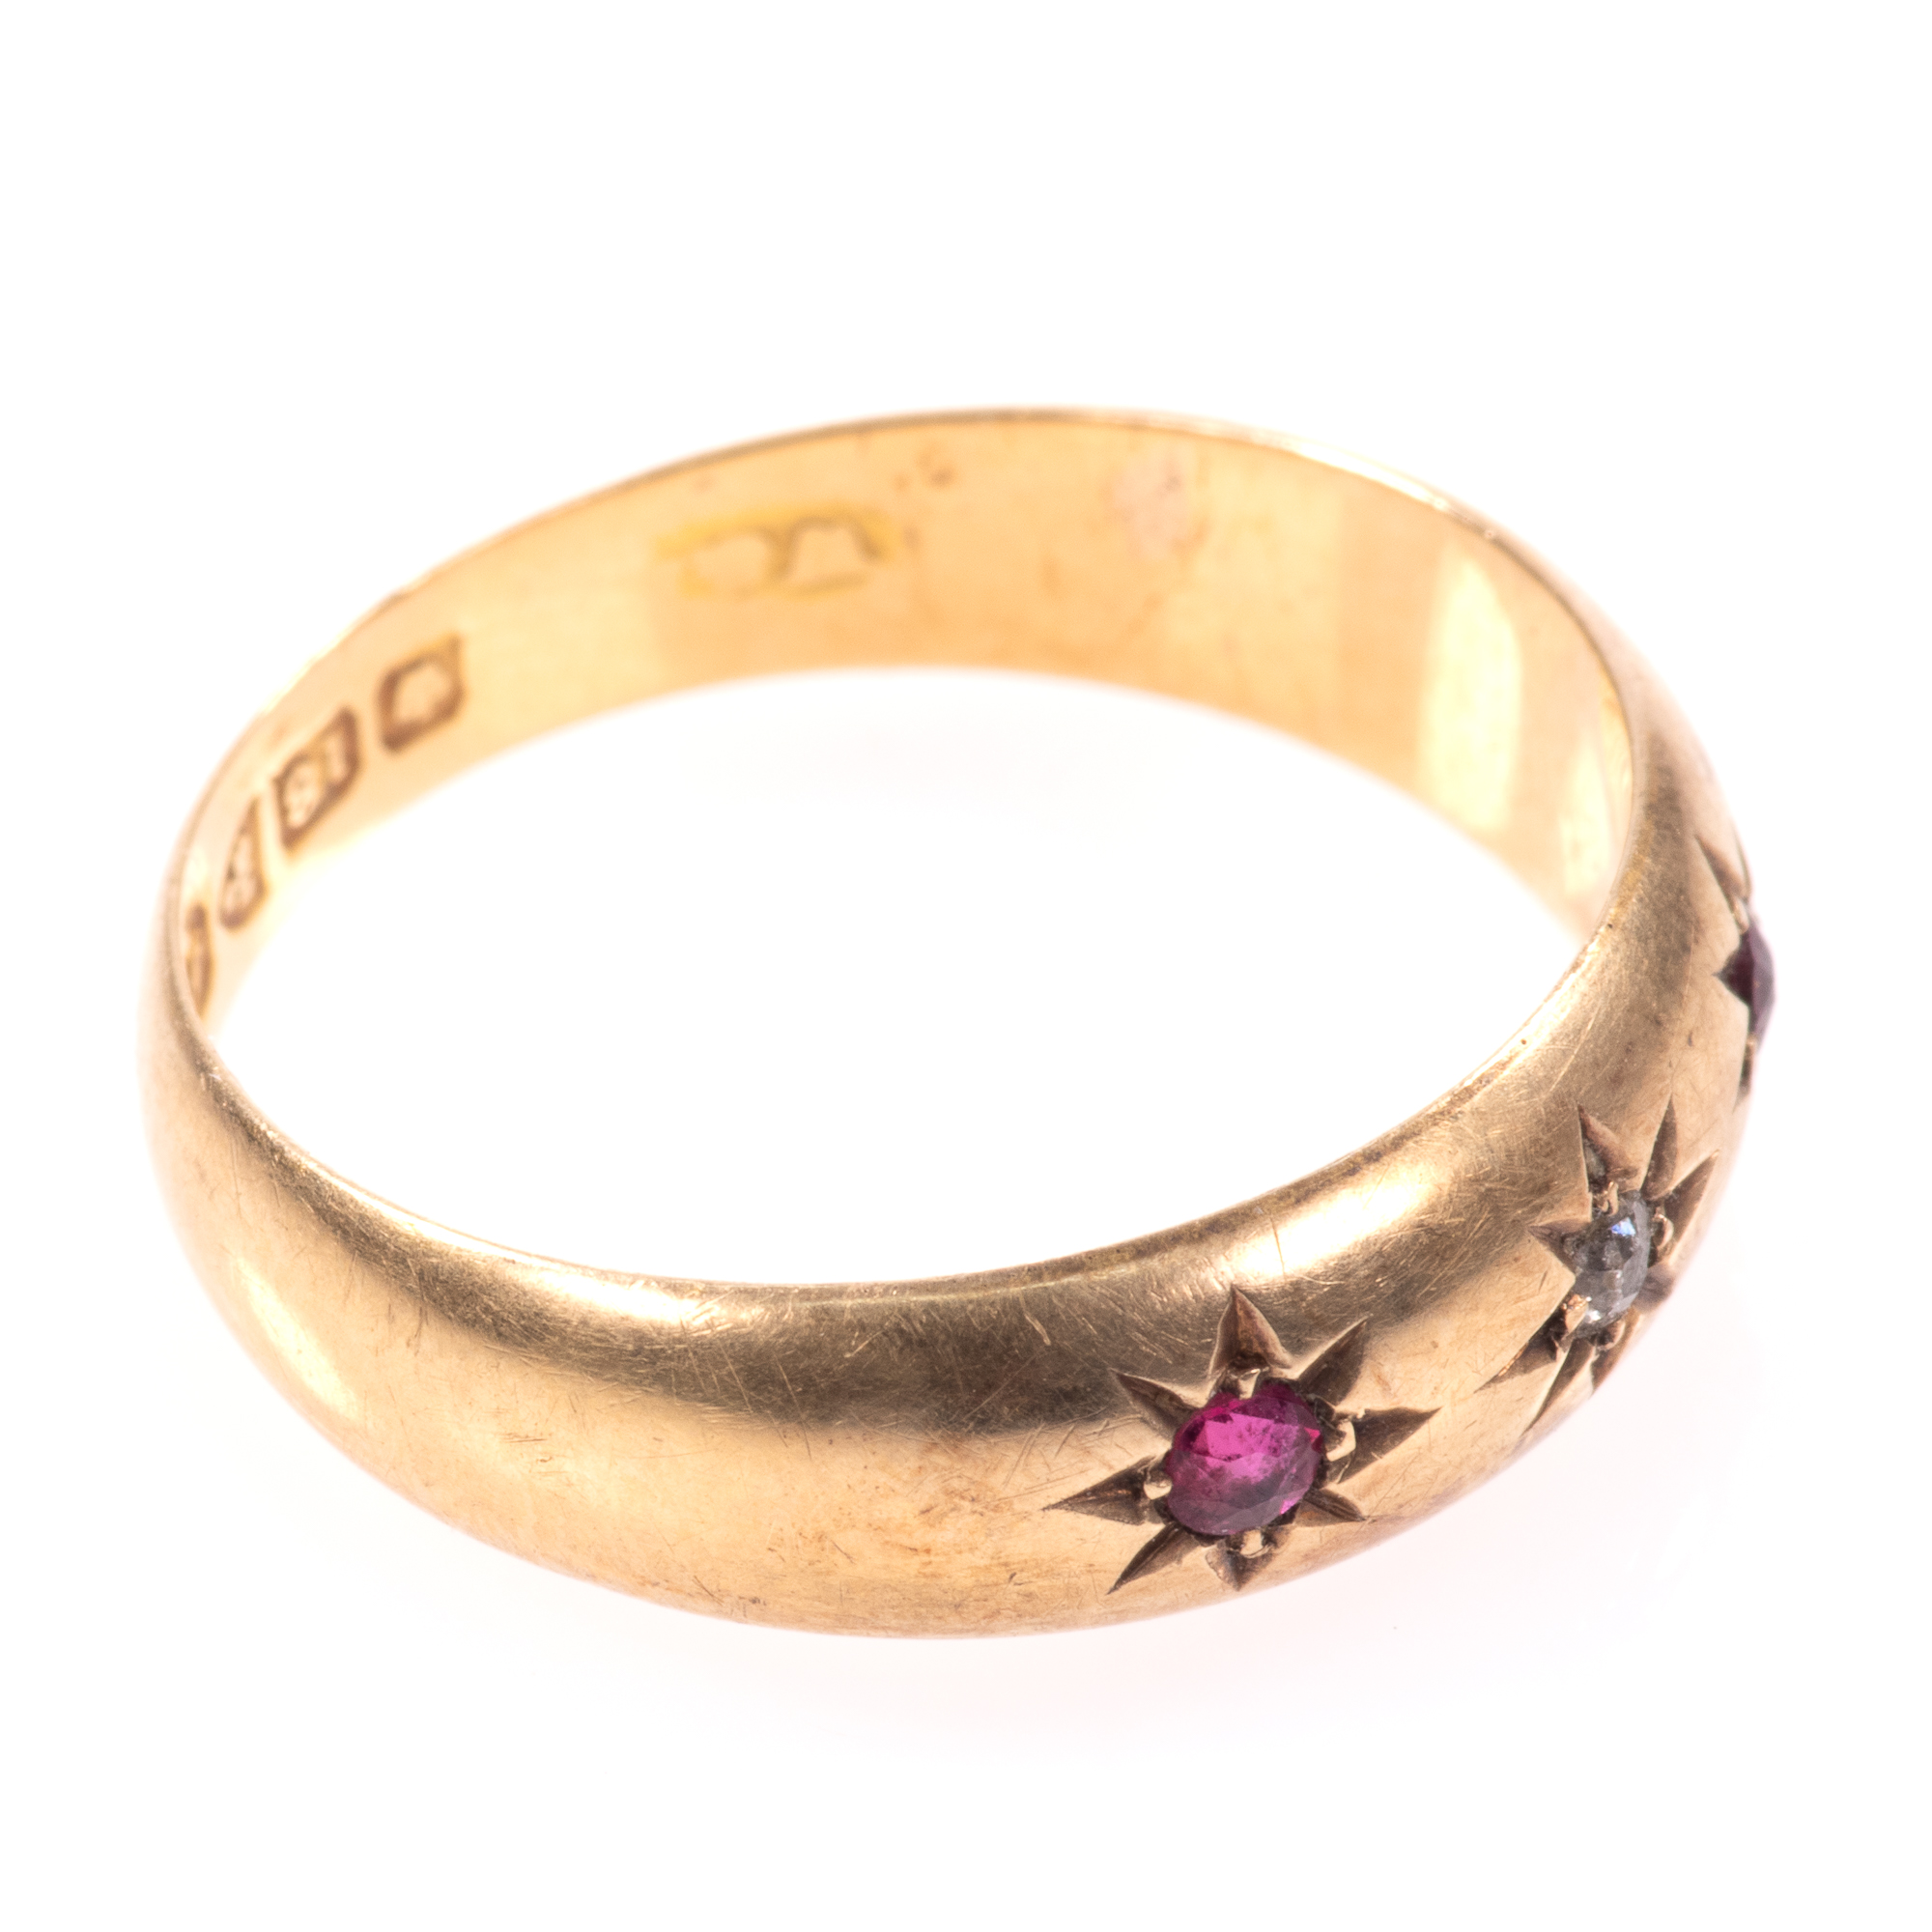 18ct Gold Edwardian Ruby & Diamond Ring Chester 1909 - Image 8 of 8